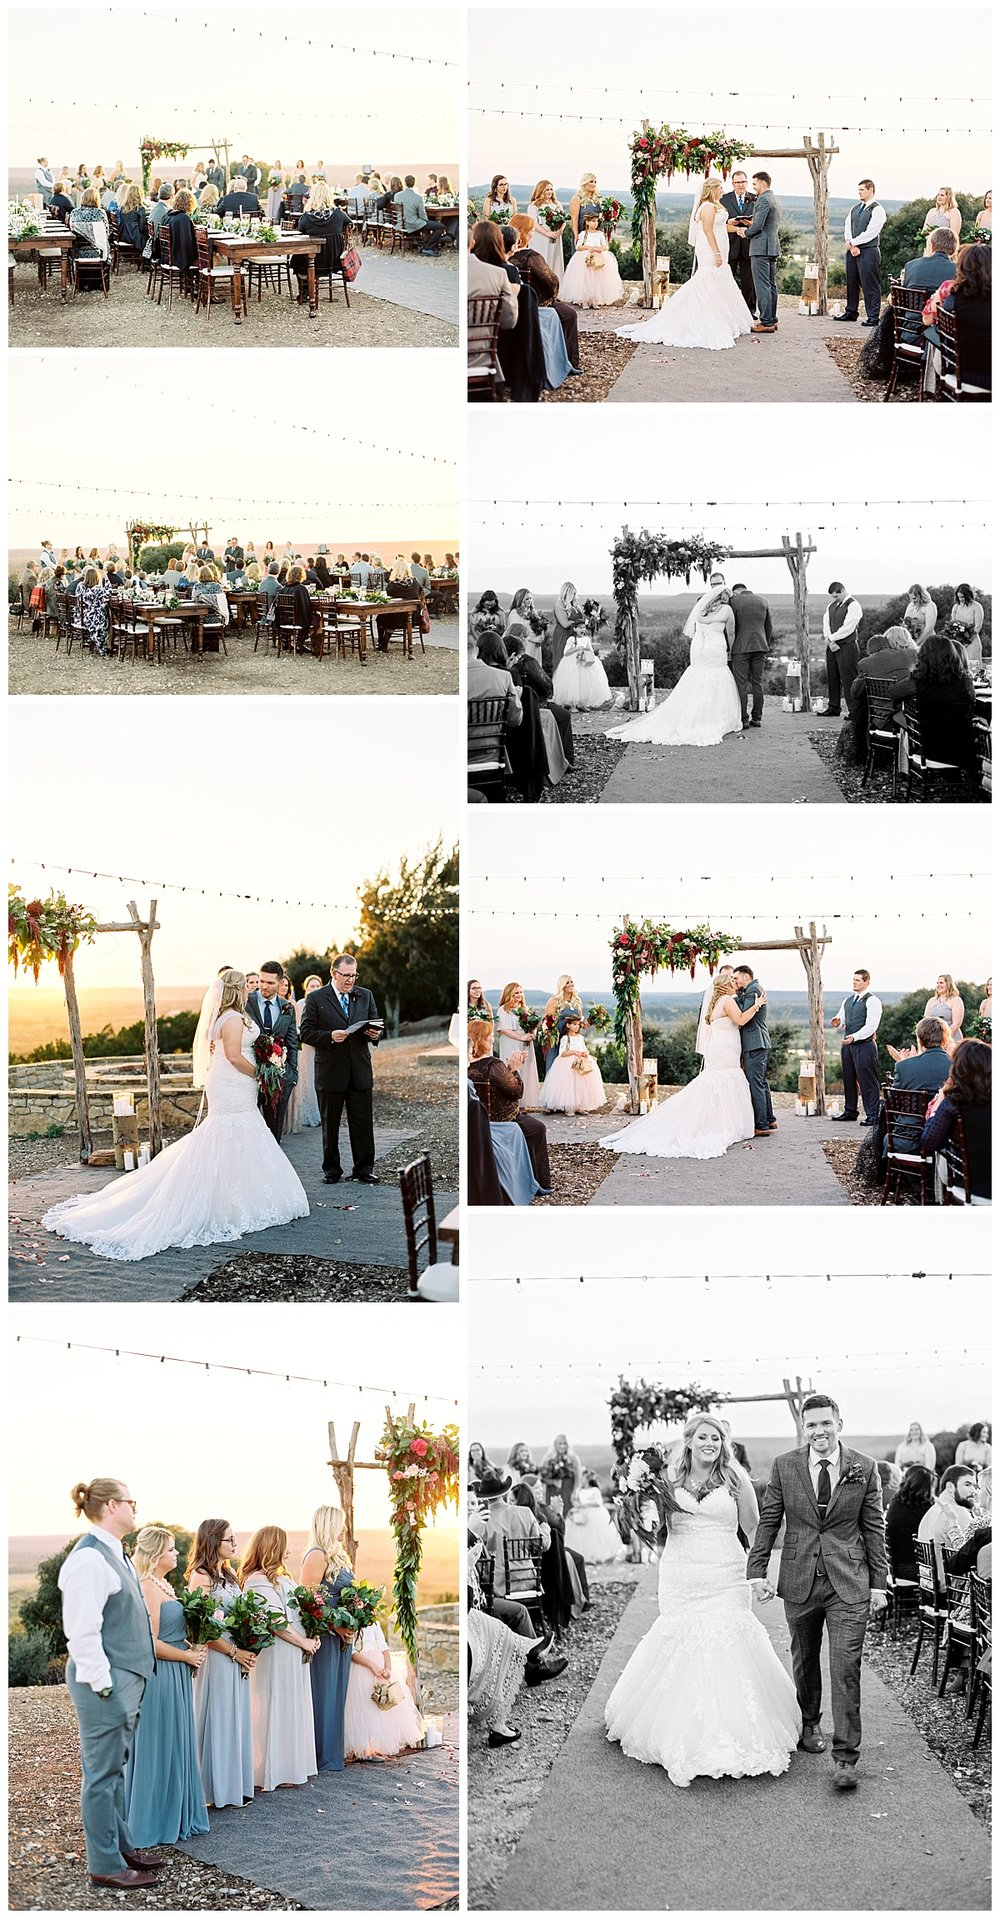 wildcatter-ranch-and-resort-wedding-ar-photography-10.jpg